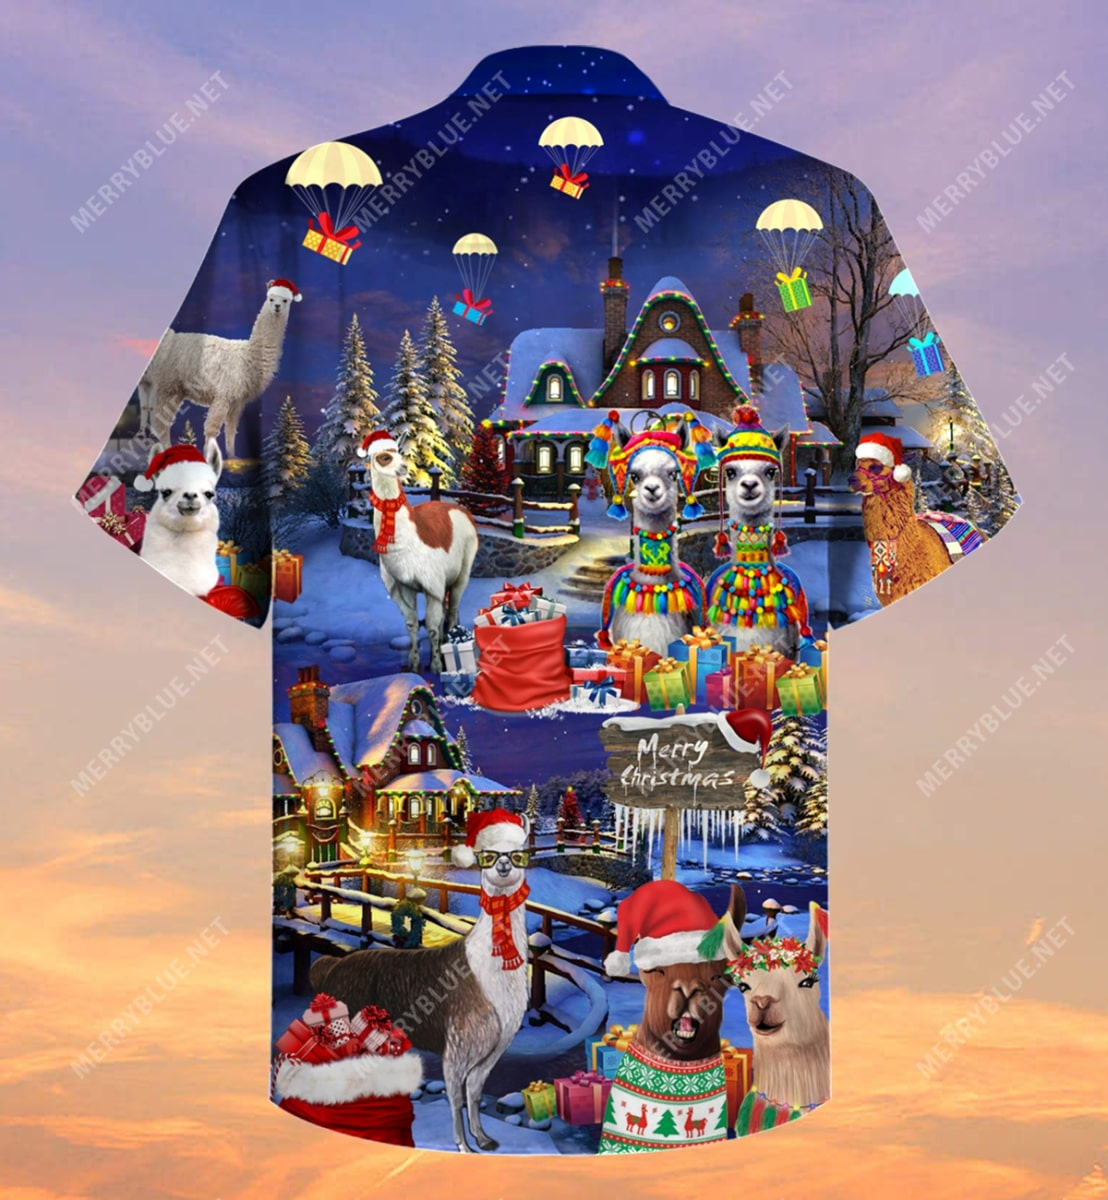 fa la la llama and merry christmas full printing hawaiian shirt 4